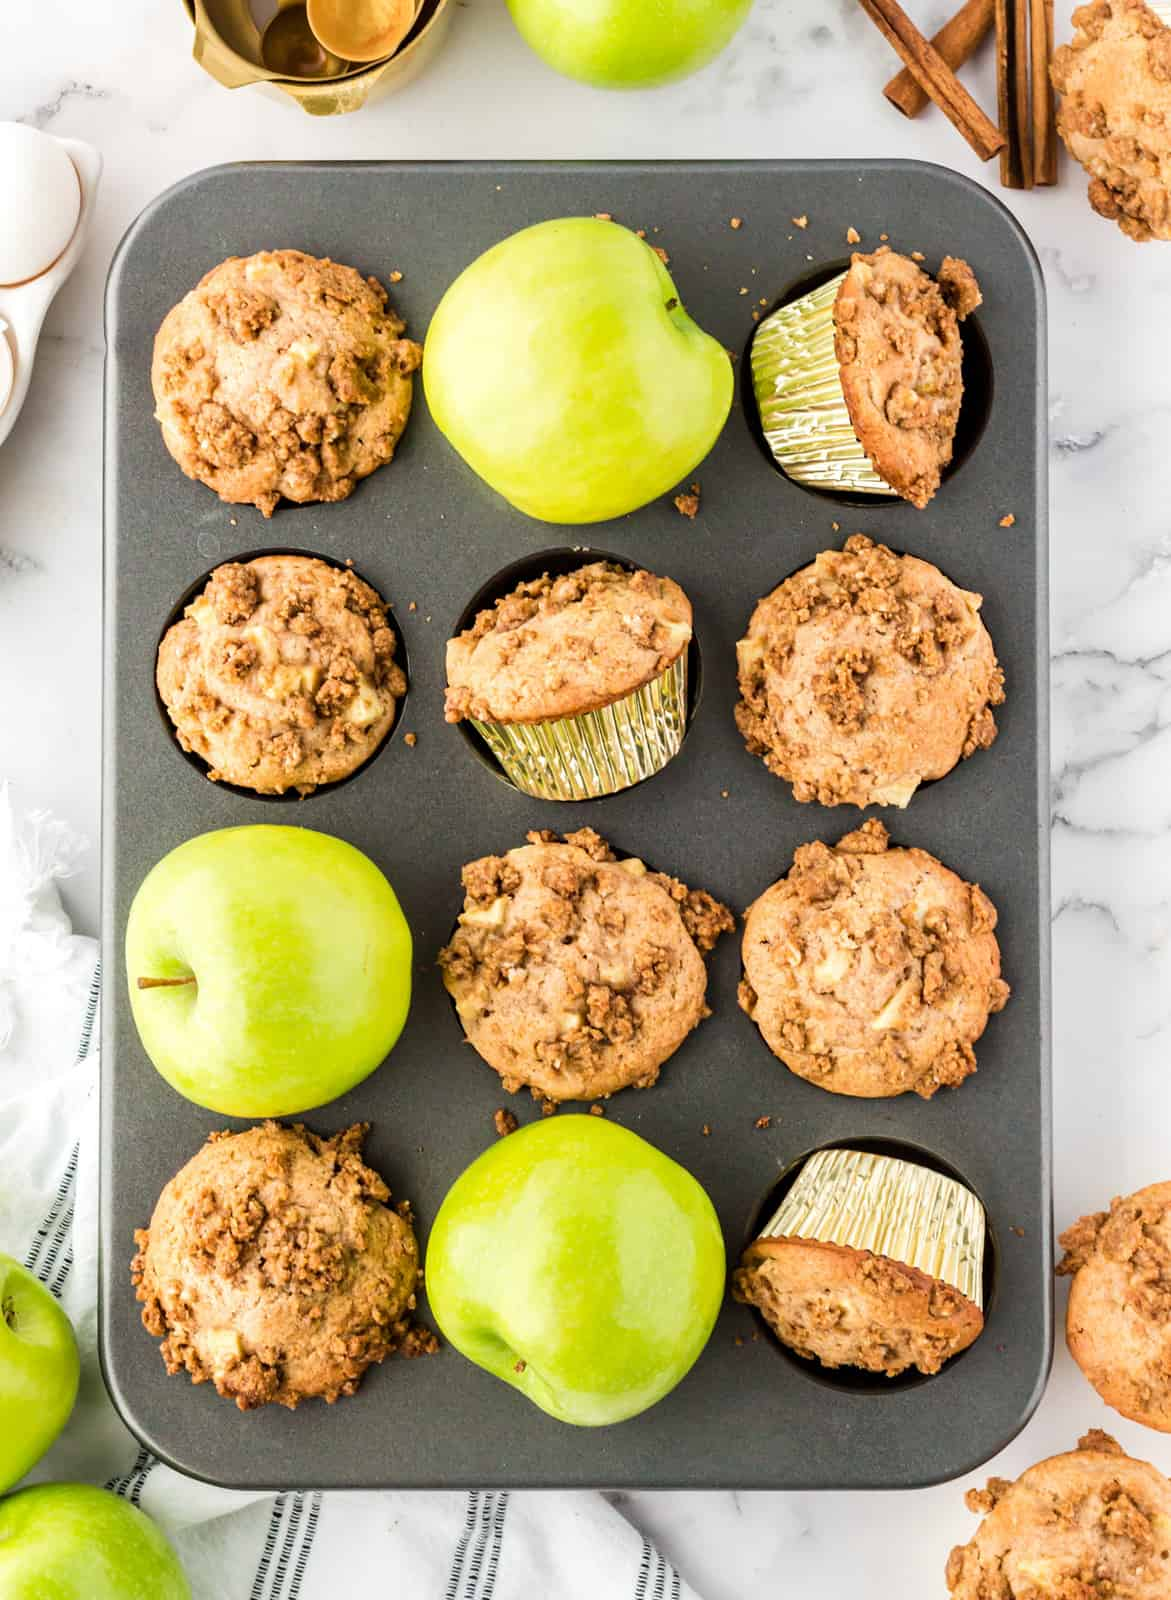 Finished muffins with apples in muffin tin.